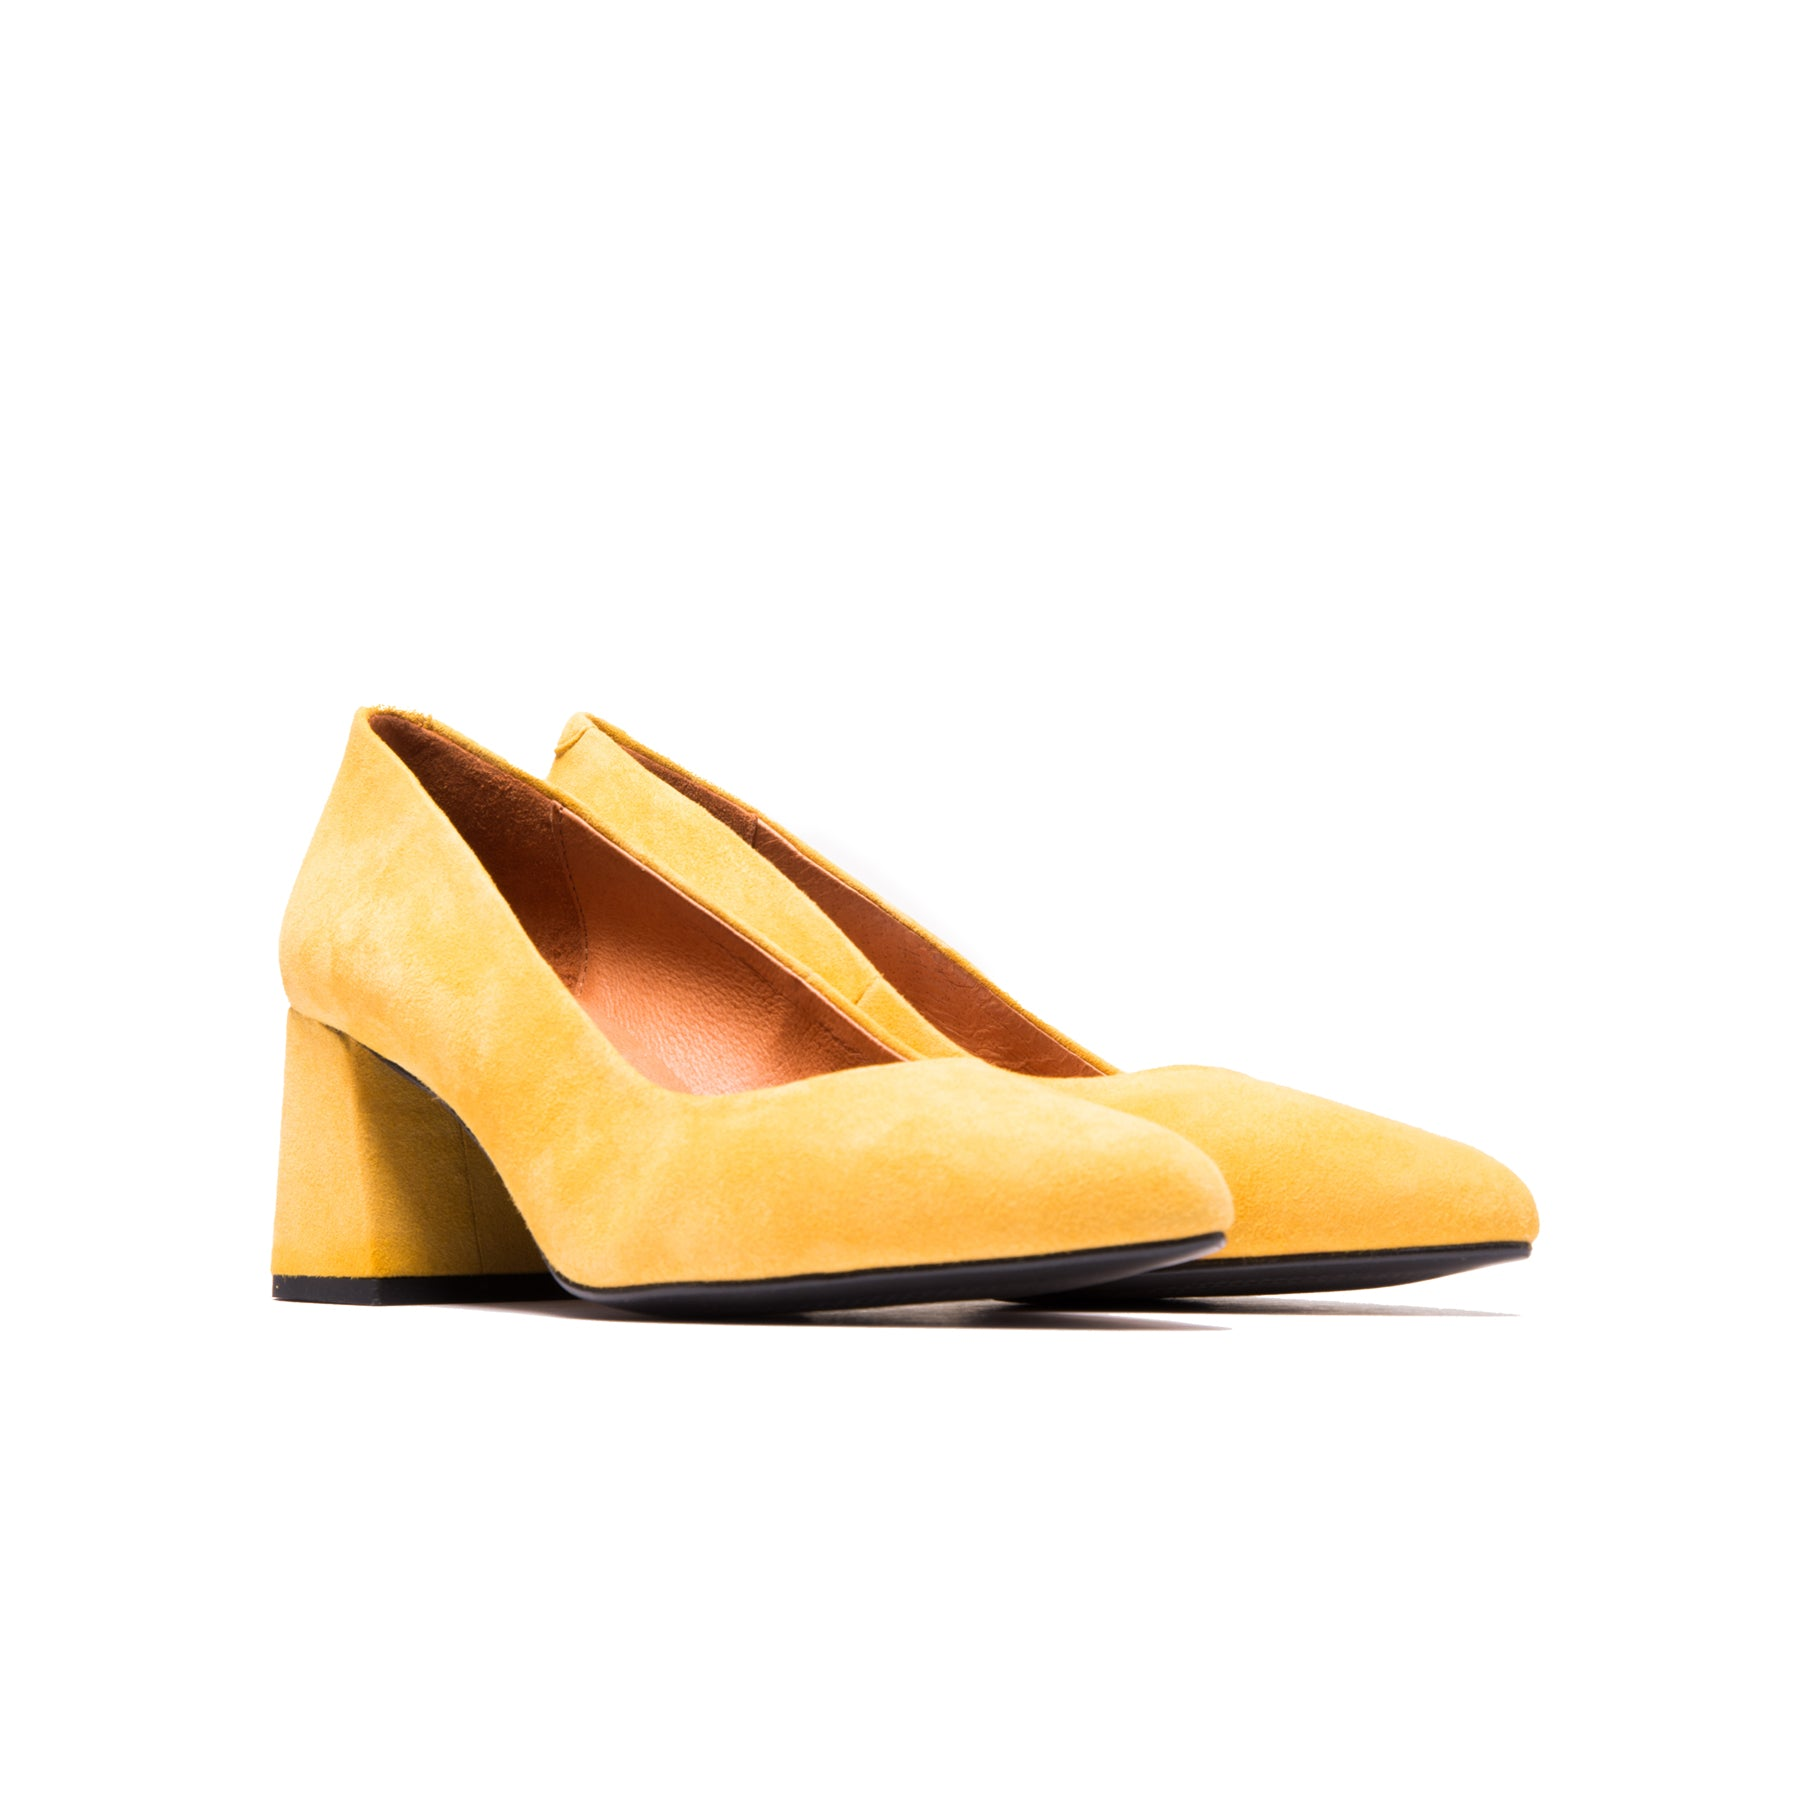 Sharon Yellow Suede